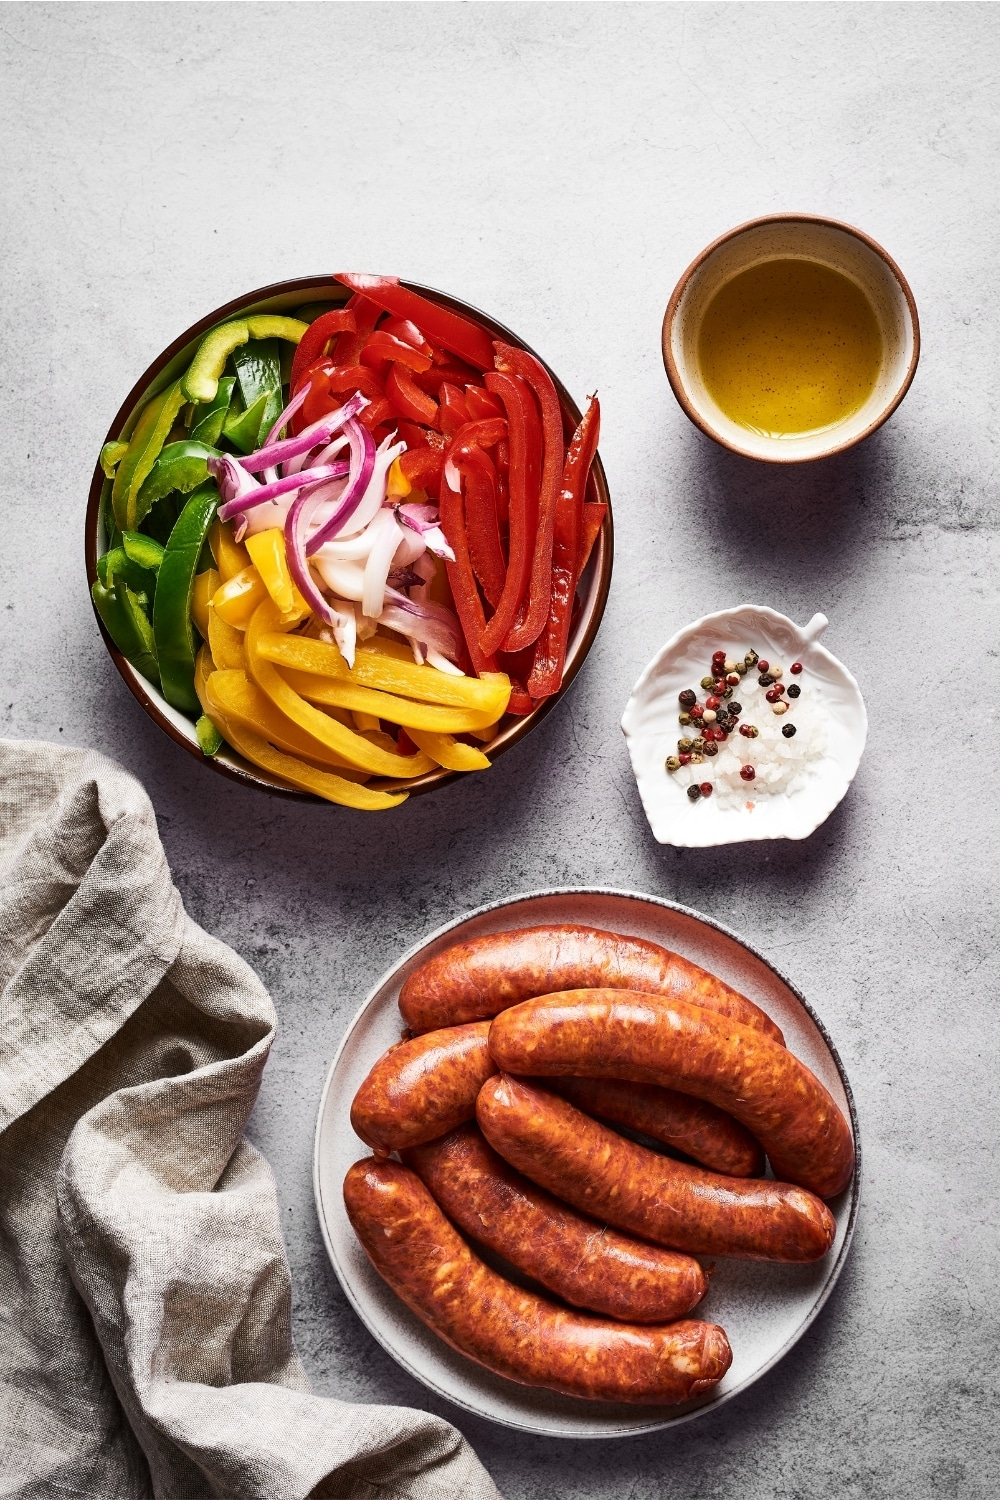 A white plate with Italian sausage on it. Behind that is a bowl with sliced red, yellow, and green peppers and onions. Next to the ball is a small white bowl with olive oil in it and in front of that is a small white leaf bowl with salt and pepper.